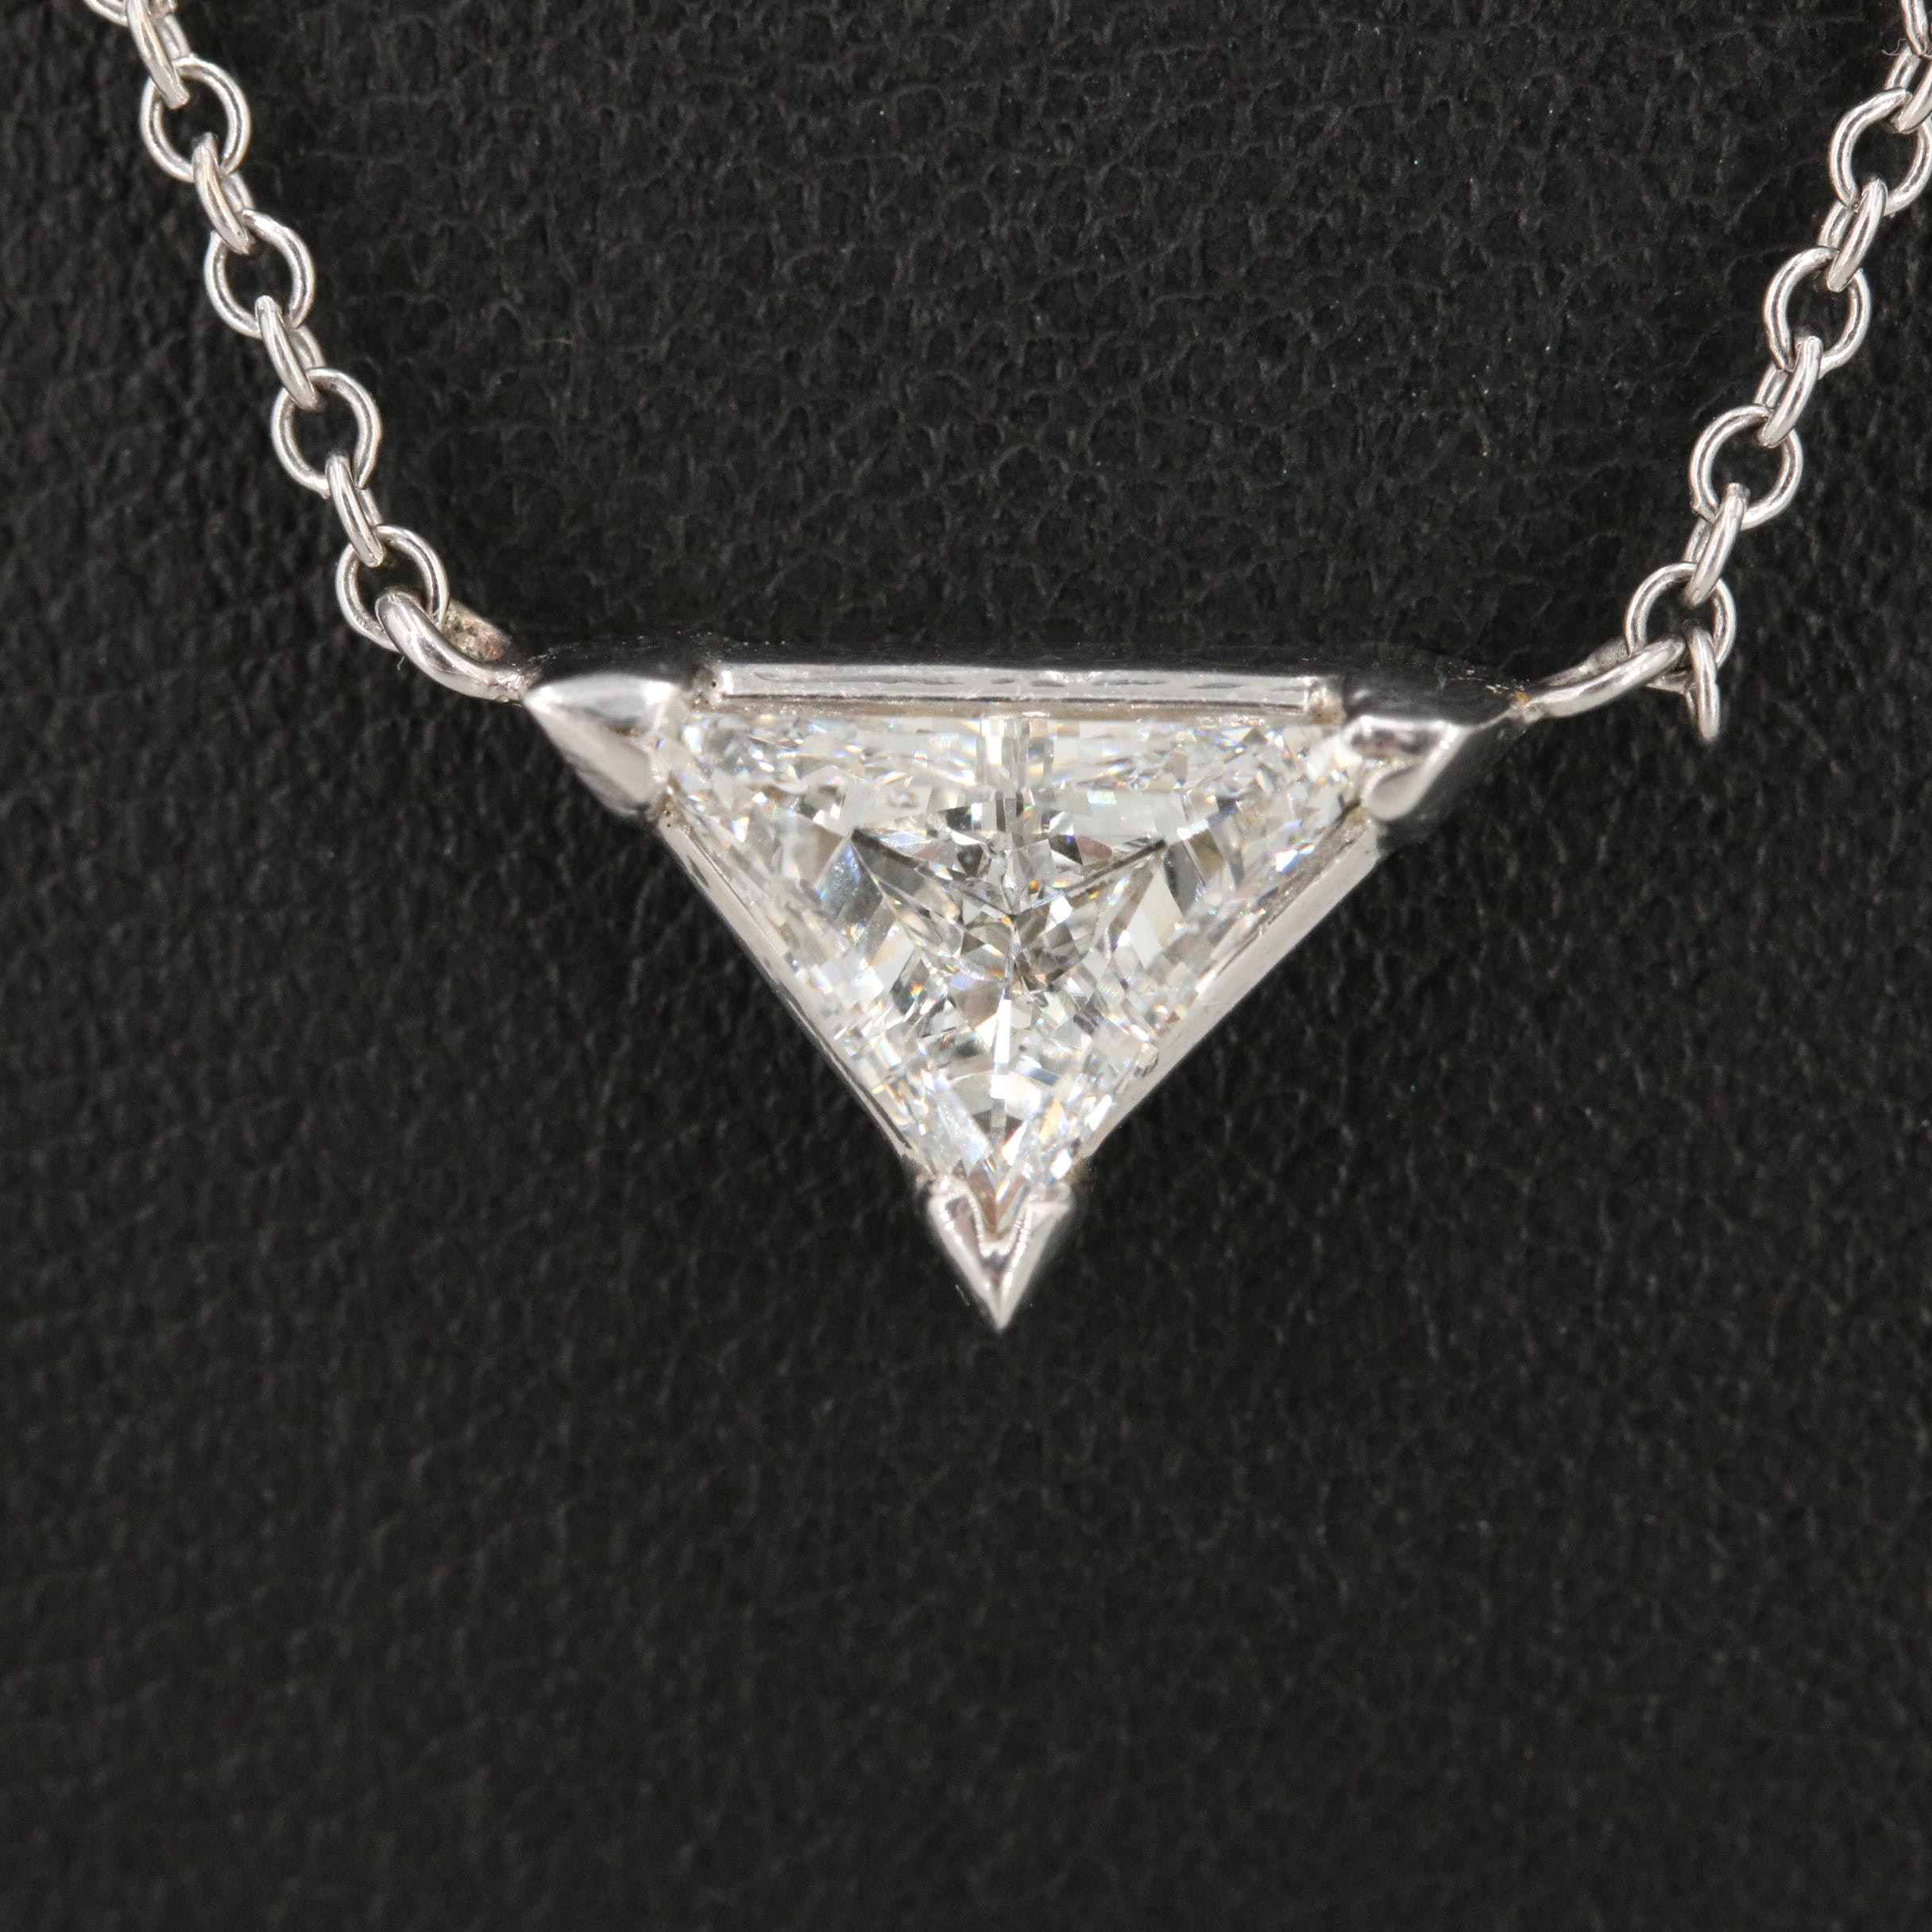 14K White Gold 1.80 CTW Diamond Station Necklace with GIA Report